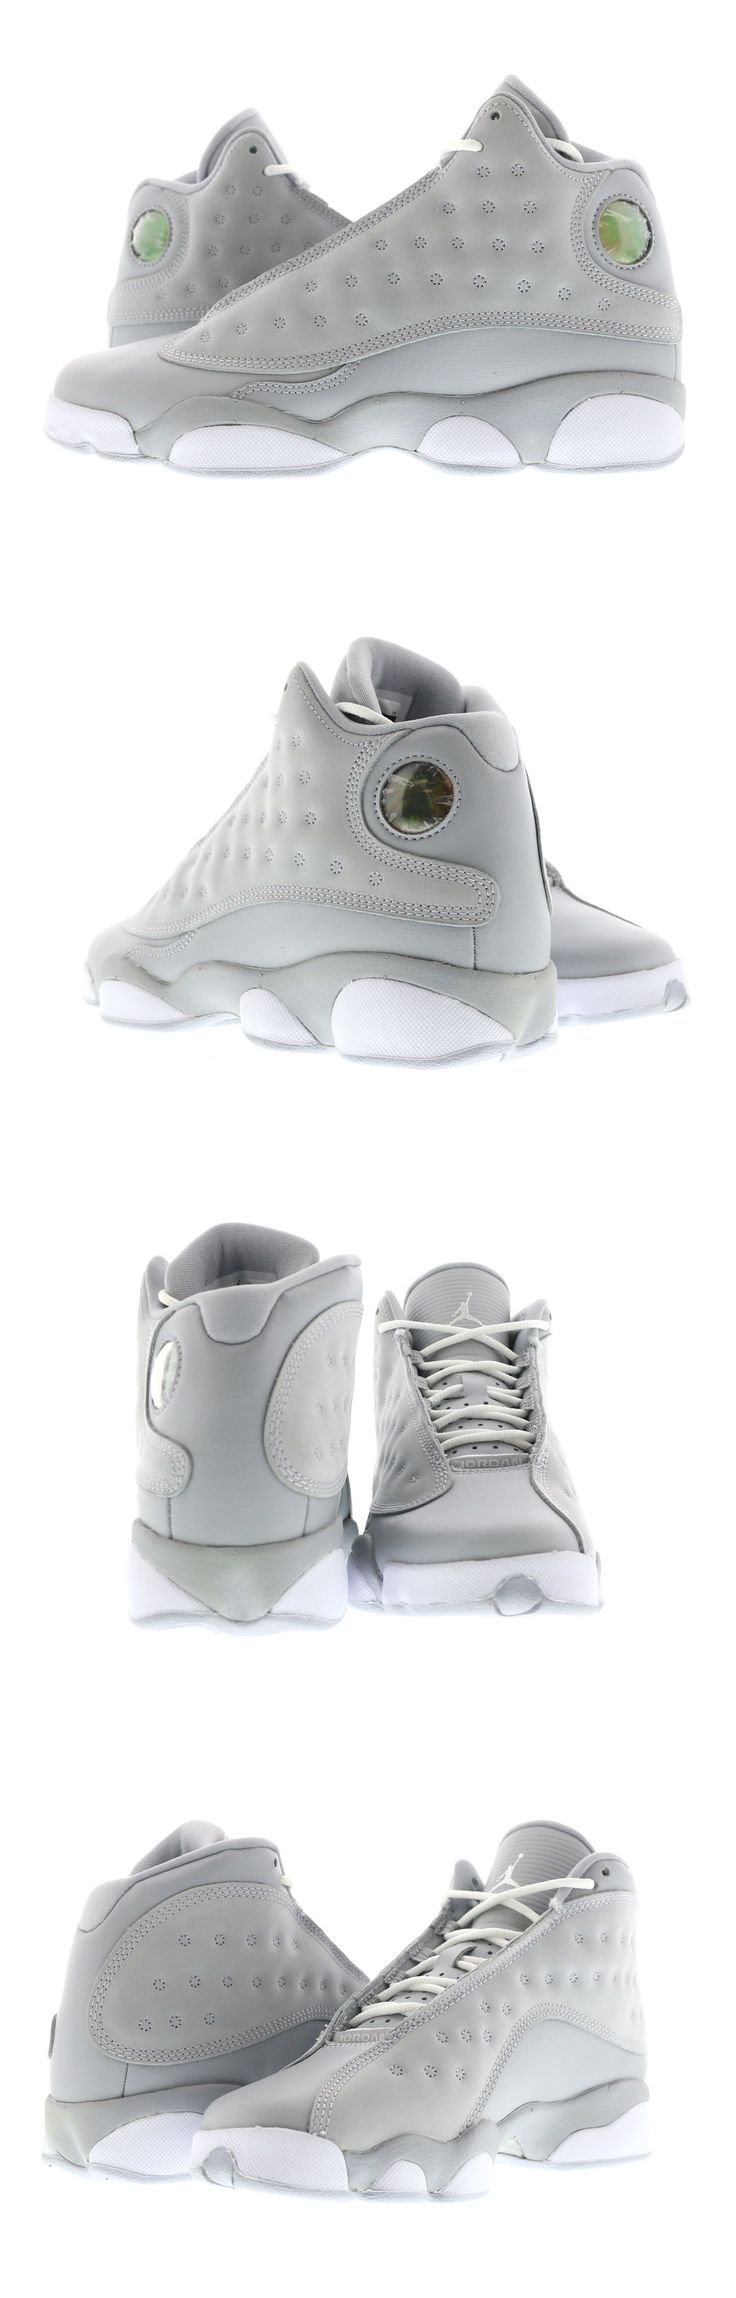 Boys Shoes 57929: Youth (Gs) Air Jordan 13 Retro Wolf Grey White-Pink 439358-018 -> BUY IT NOW ONLY: $130 on eBay!